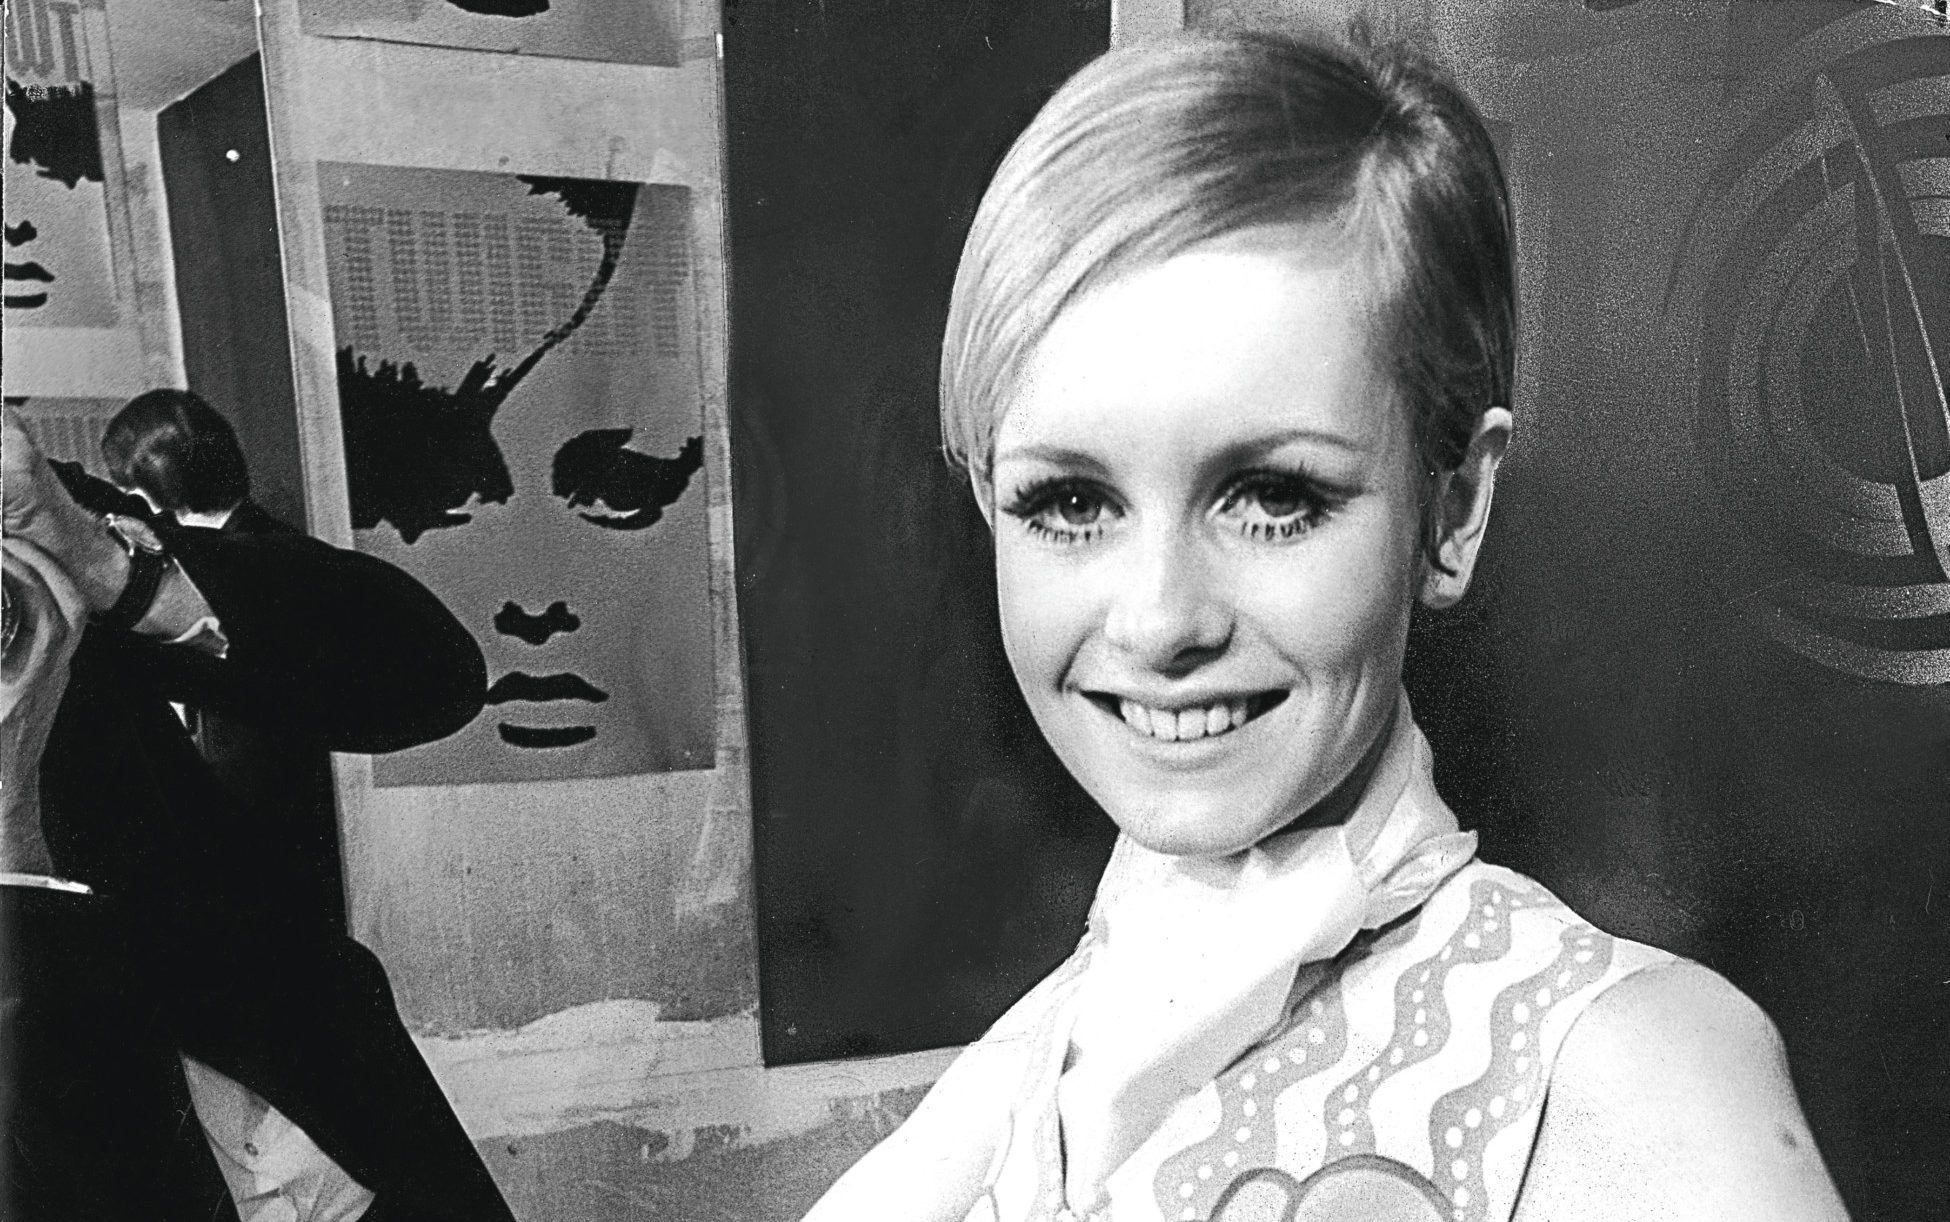 British model and actress Twiggy, 1967 (Express Newspapers/Getty Images)